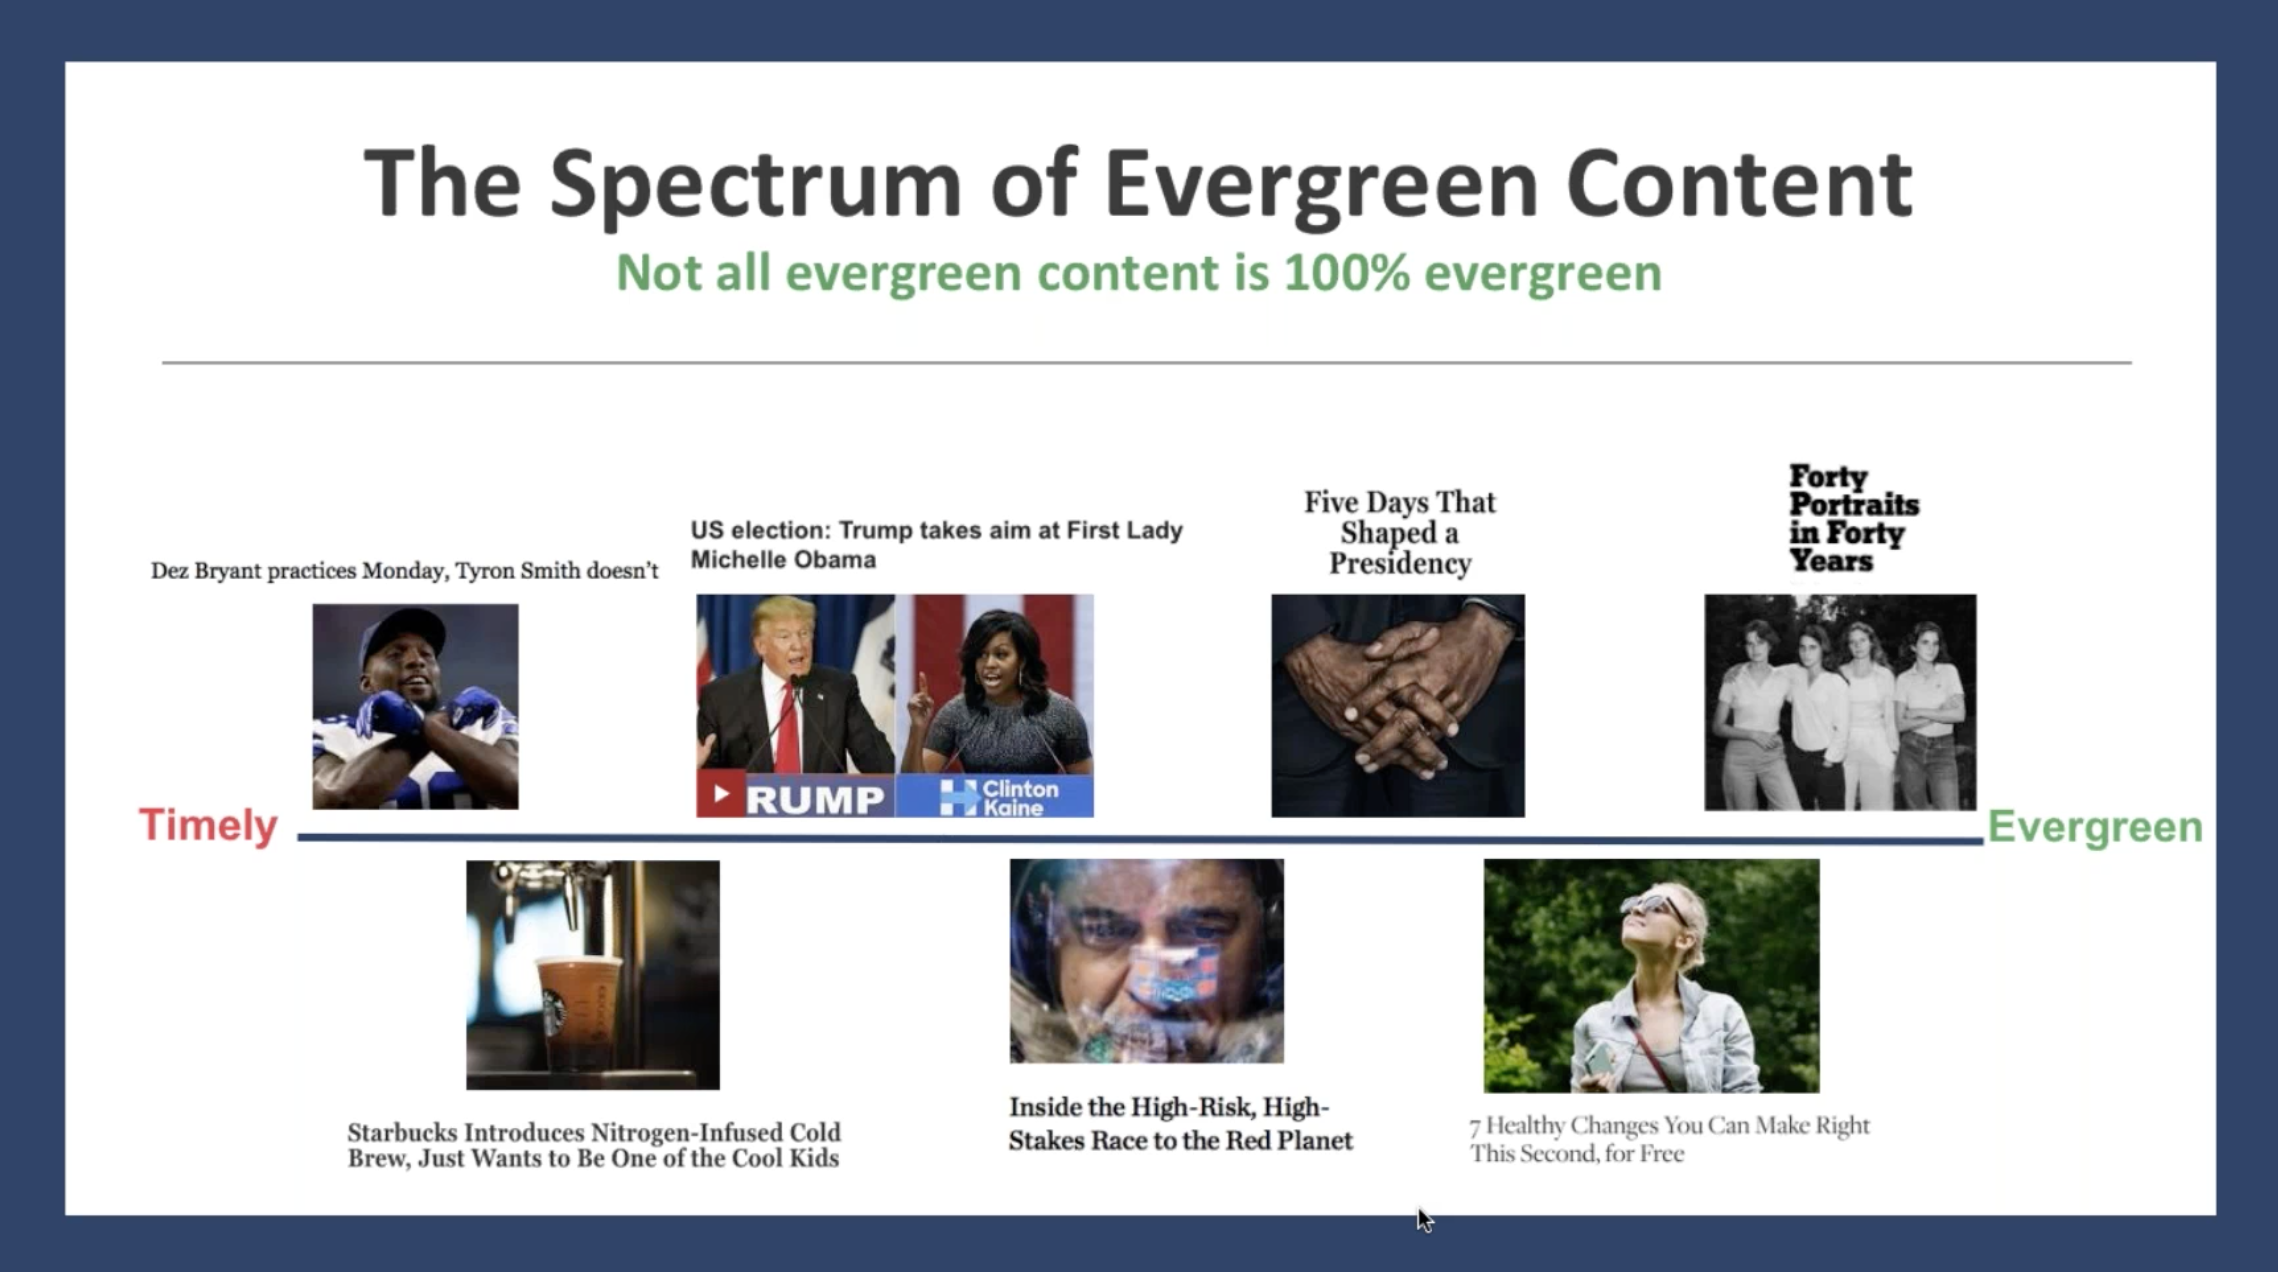 The Evergreen Content Spectrum